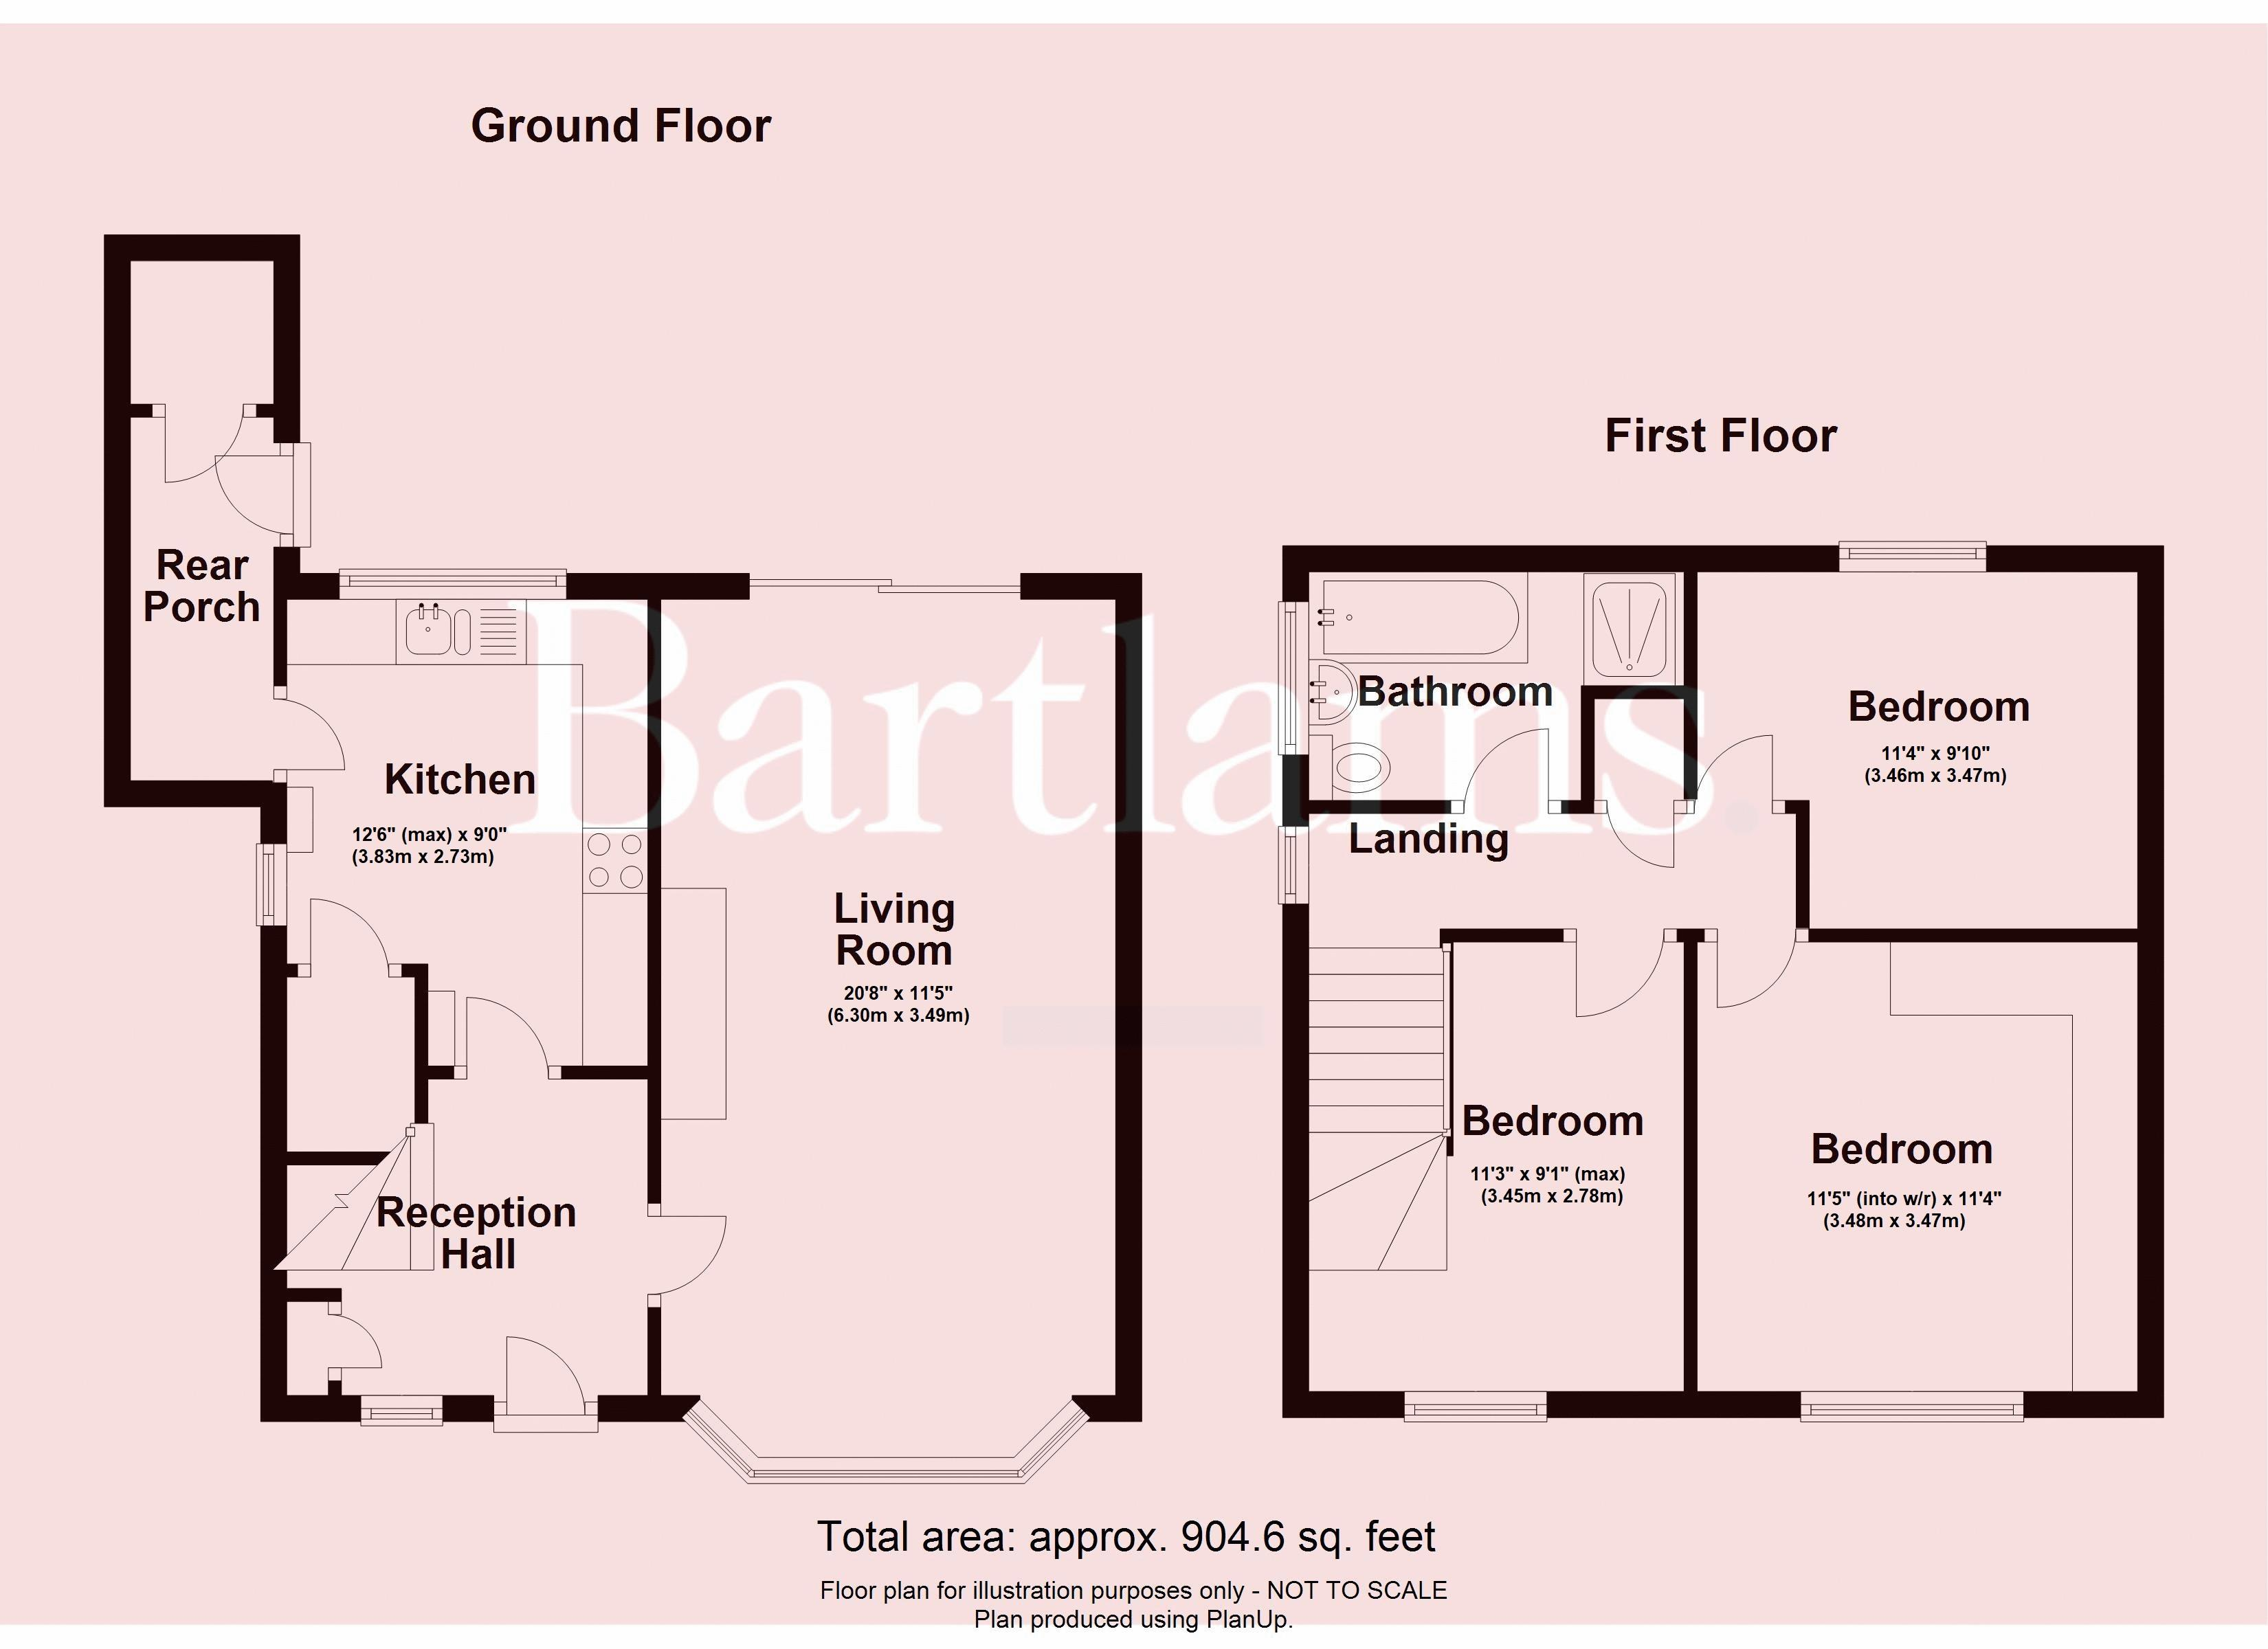 Floor Plan (with dimensions)